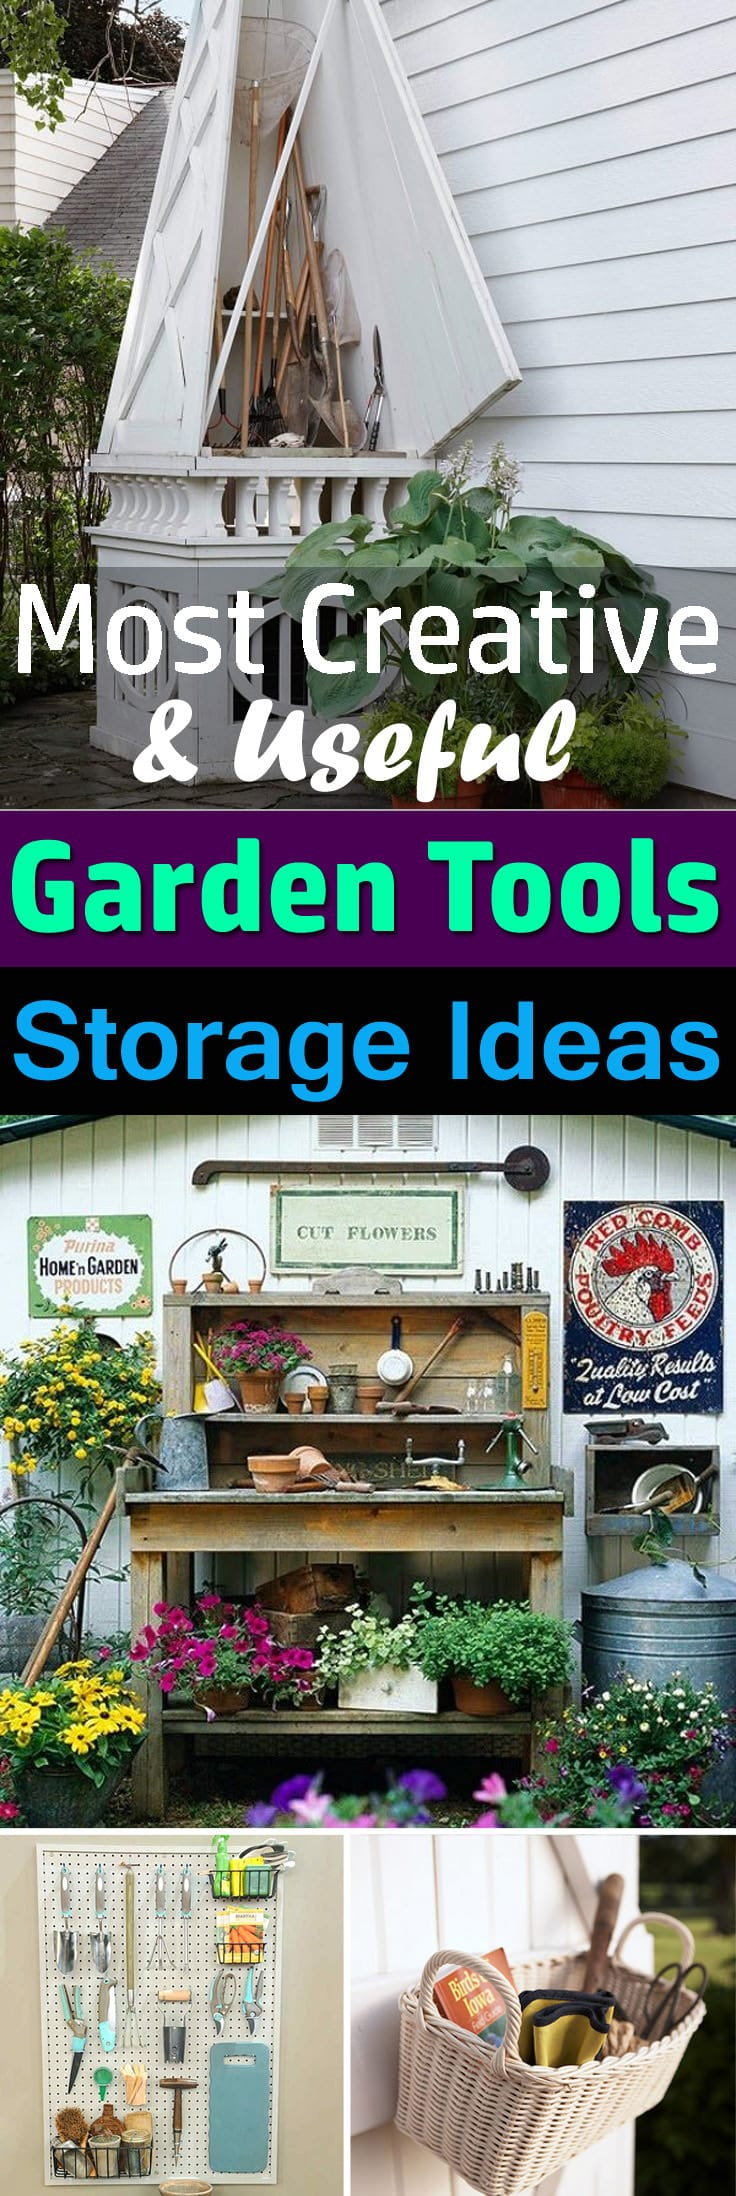 Save your time and money and stop finding the gardening tools you misplace by trying one of these clever DIY Garden Tool Storage Ideas!